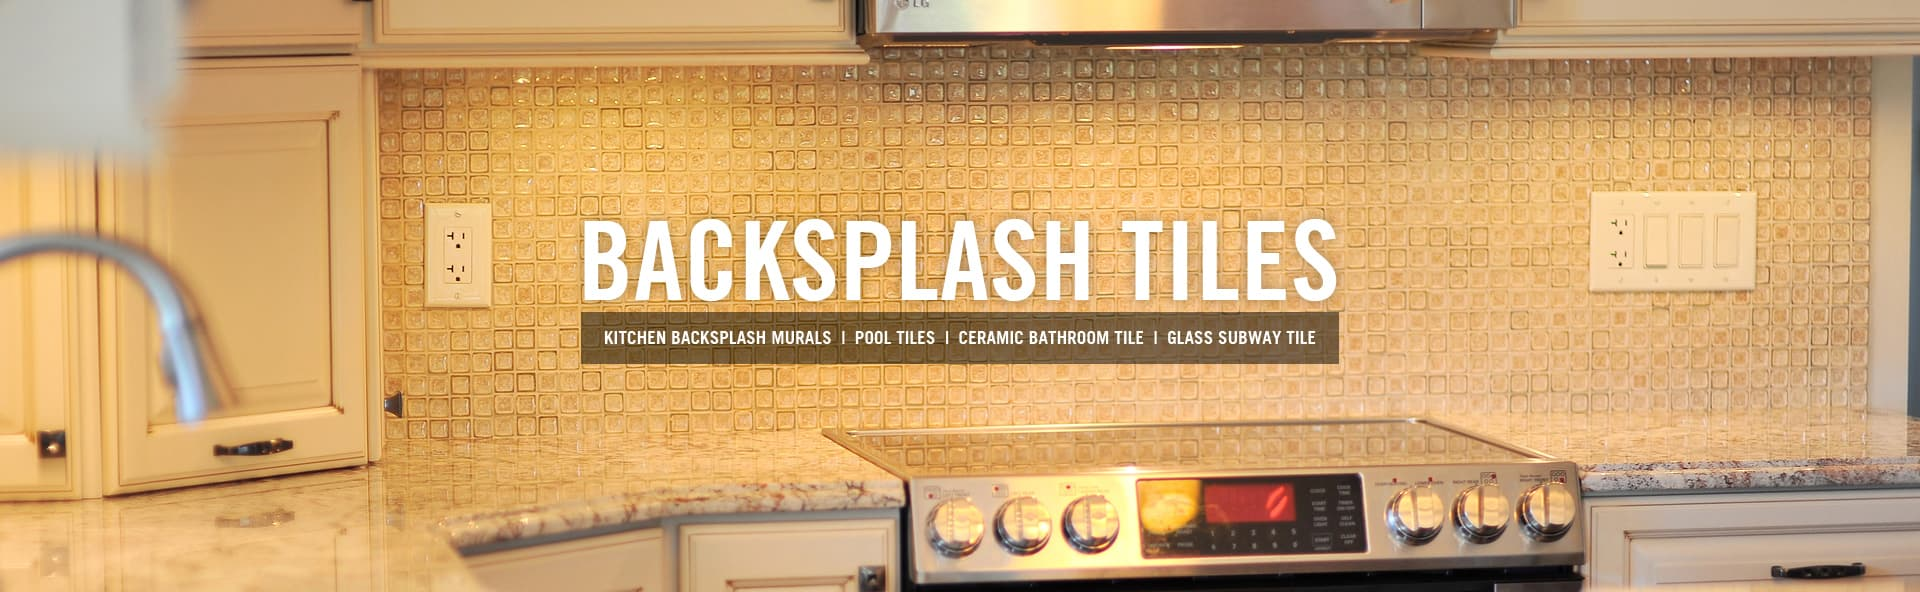 Best Kitchen Backsplash Tile and Mosaic Online | Belk Tile